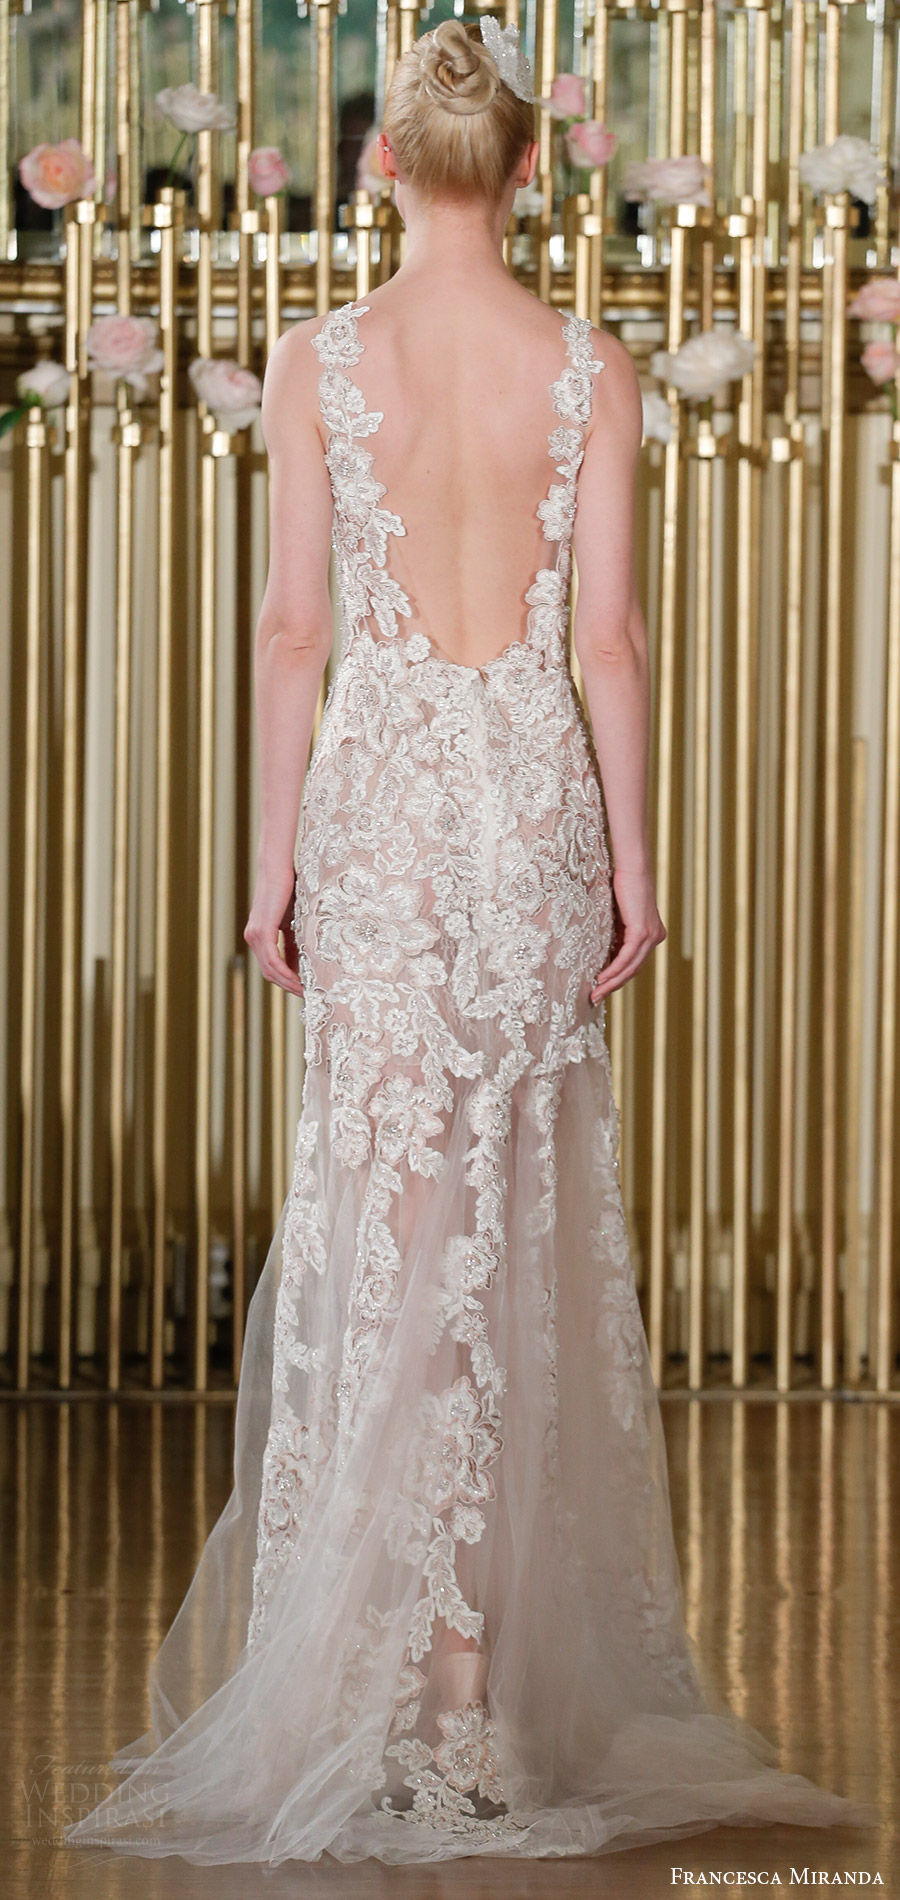 francesca miranda spring 2018 bridal sleeveless sweetheart blush lace mermaid wedding dress ilusion skirt (jocelyn) bv elegant sweep train